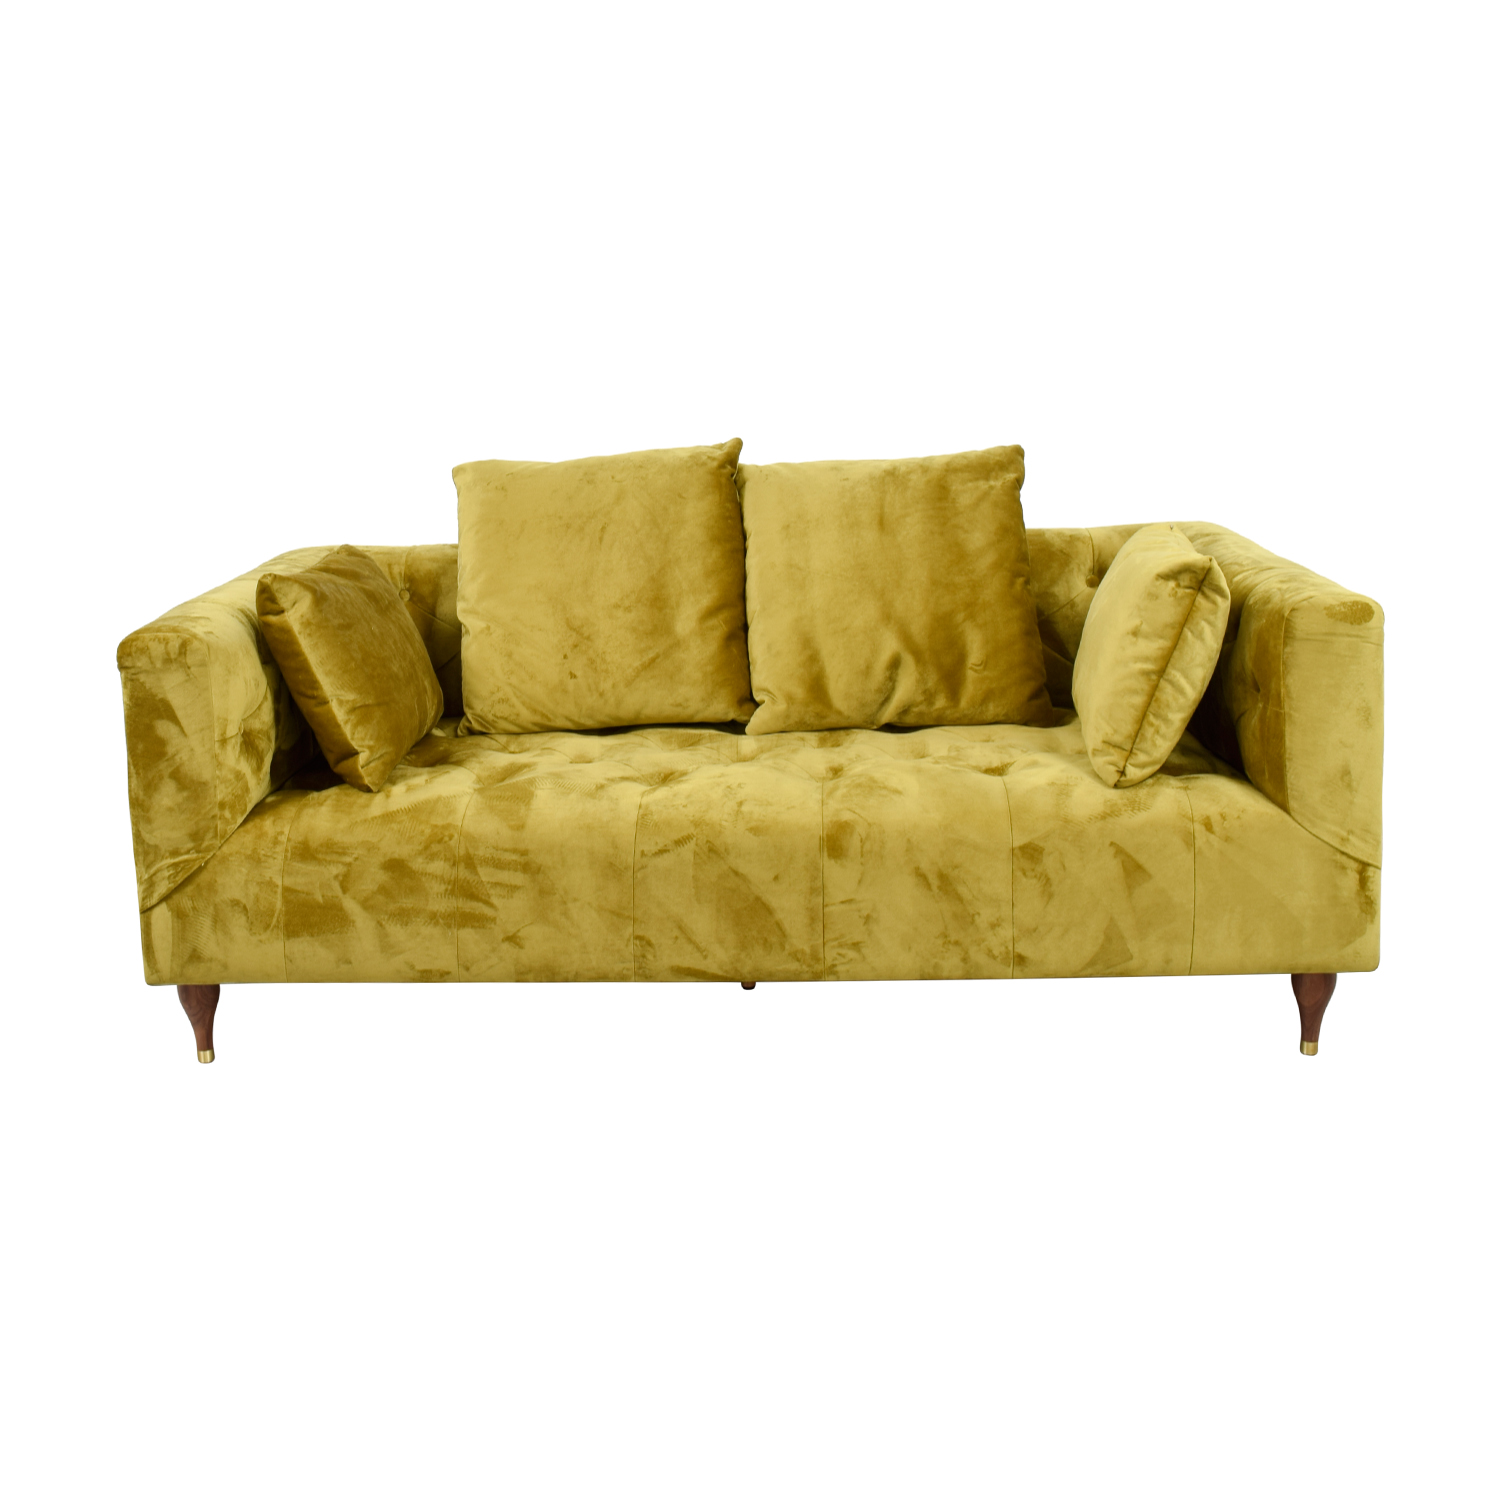 Ms. Chesterfield Citrine Tufted Sofa discount